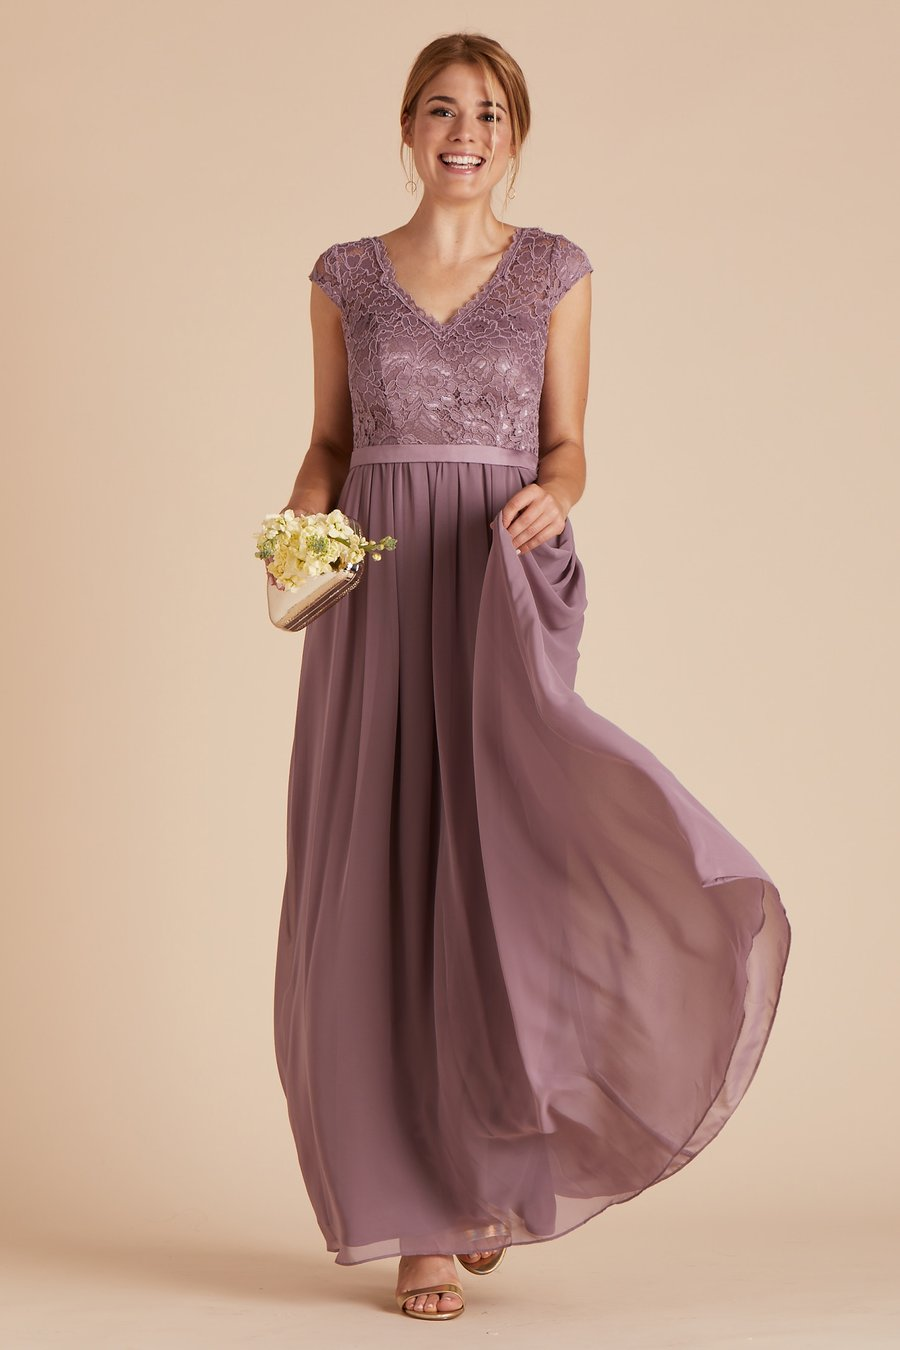 744d24f64d25 V-Neck Cap-Sleeved Bridesmaid Dress | Bycouturier